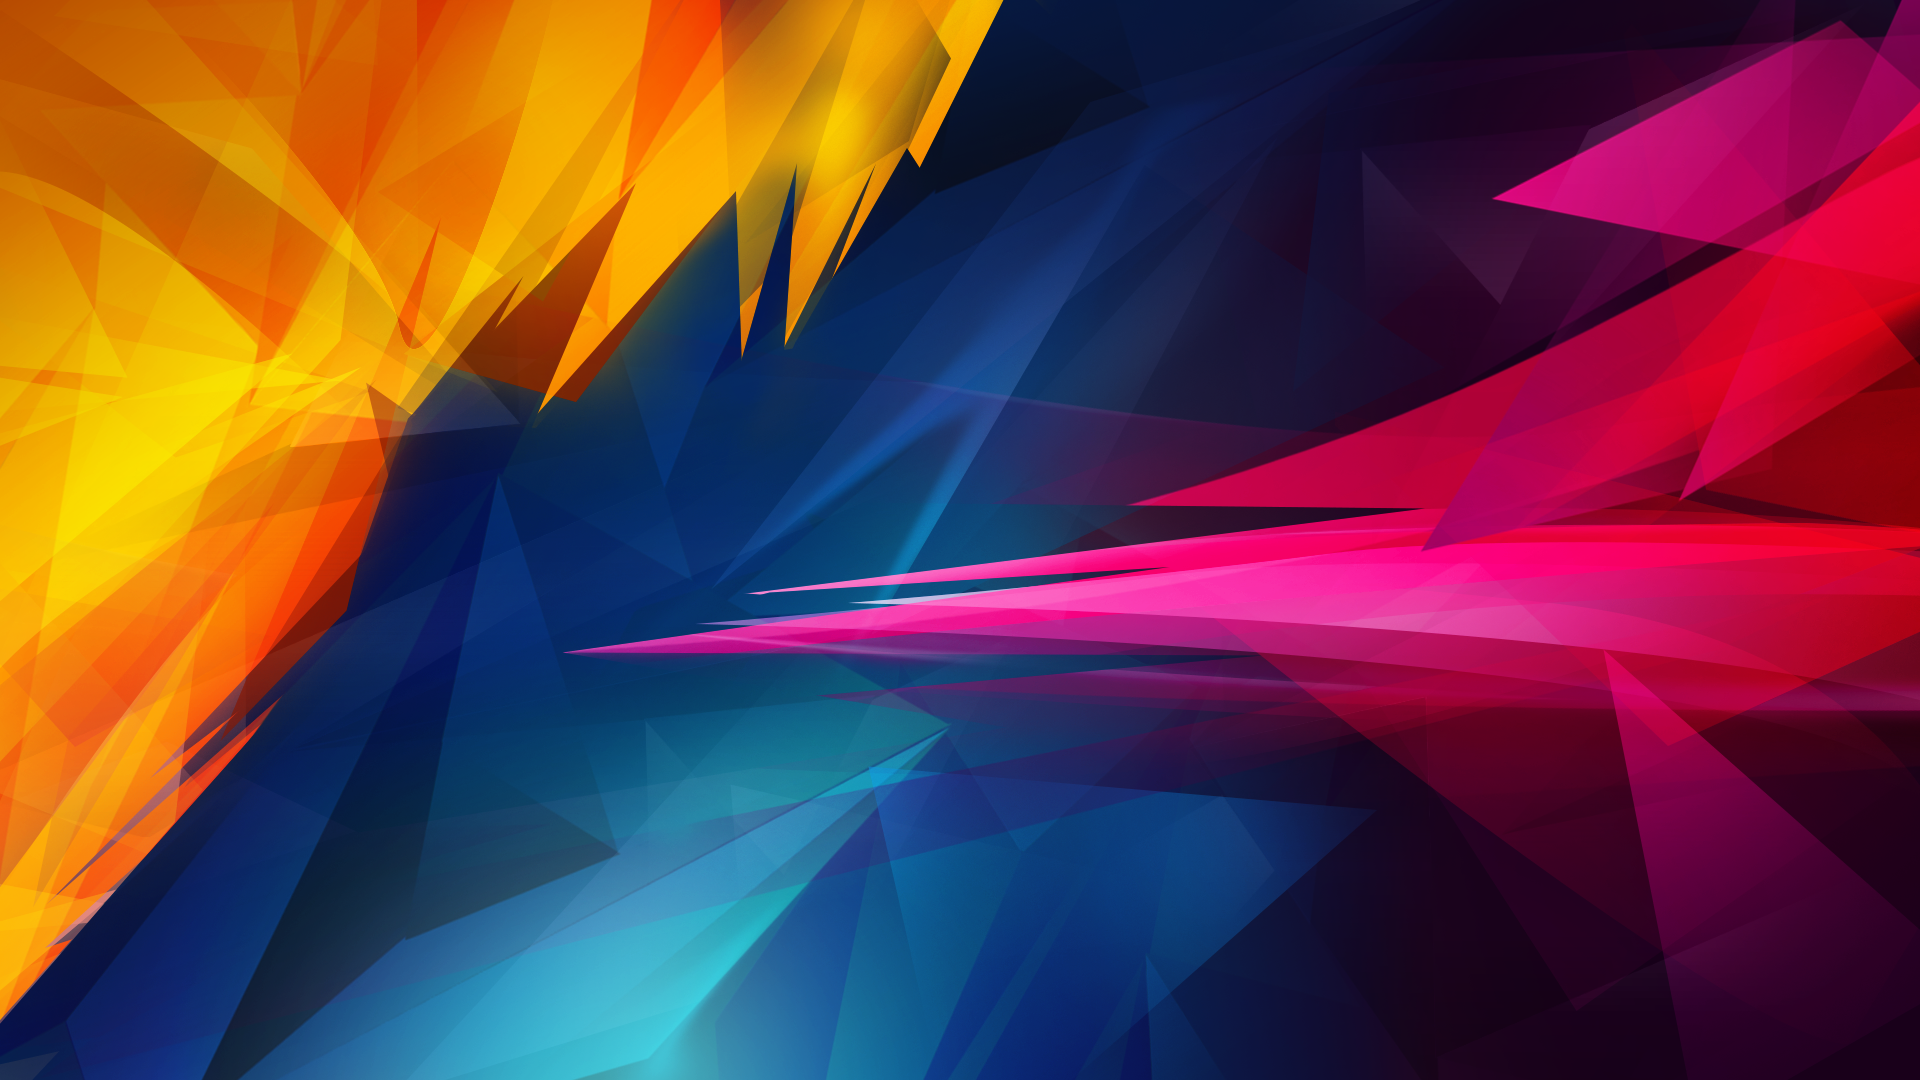 1920x1080px Hd Abstract Wallpapers 1080p 1920x1080